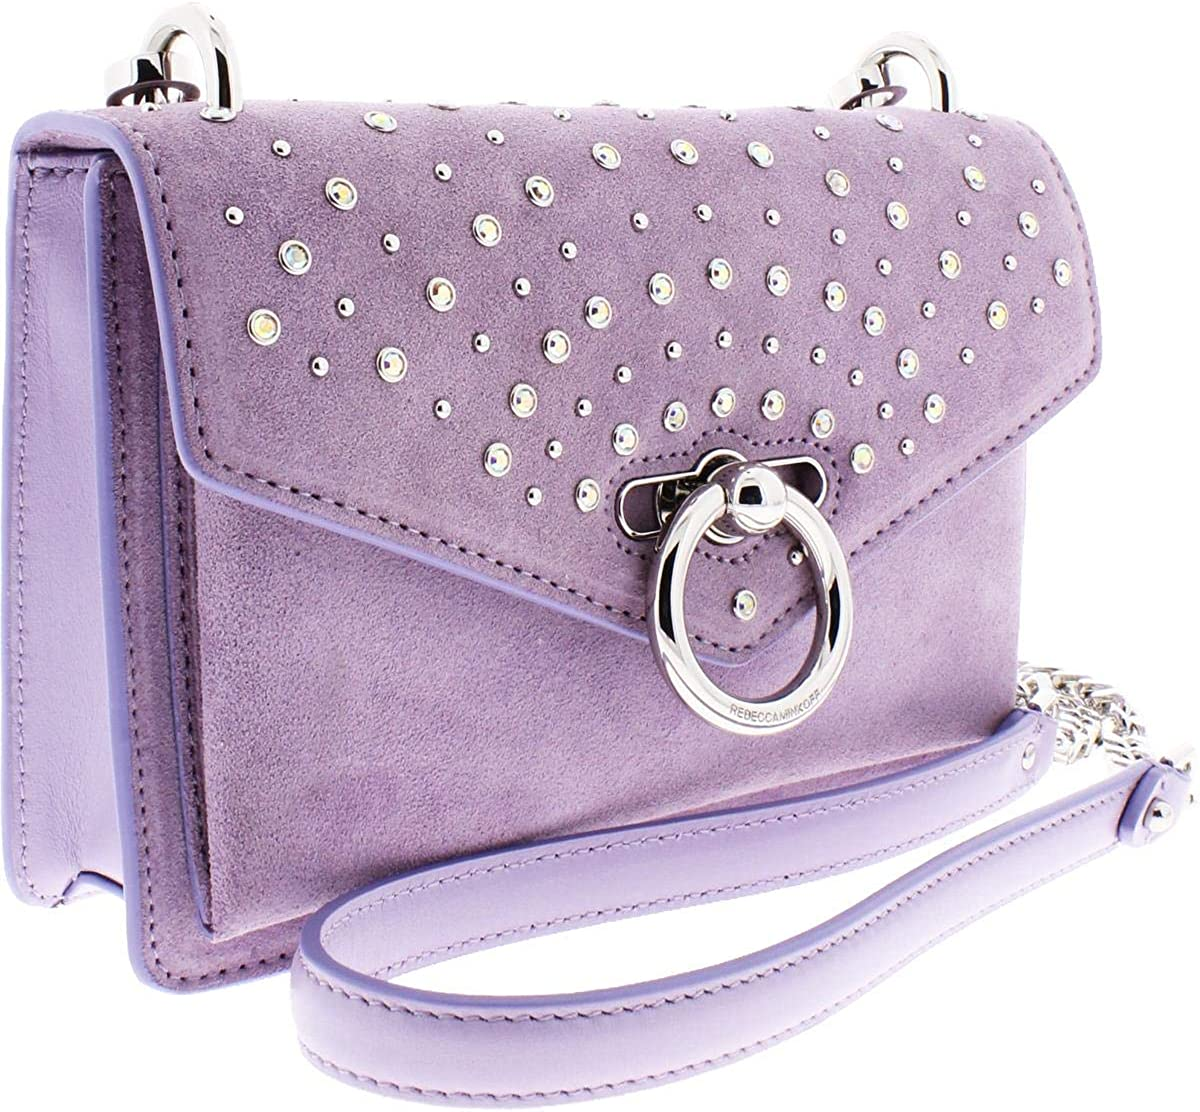 Rebecca Minkoff Womens Jean Suede Embellished Crossbody Handbag